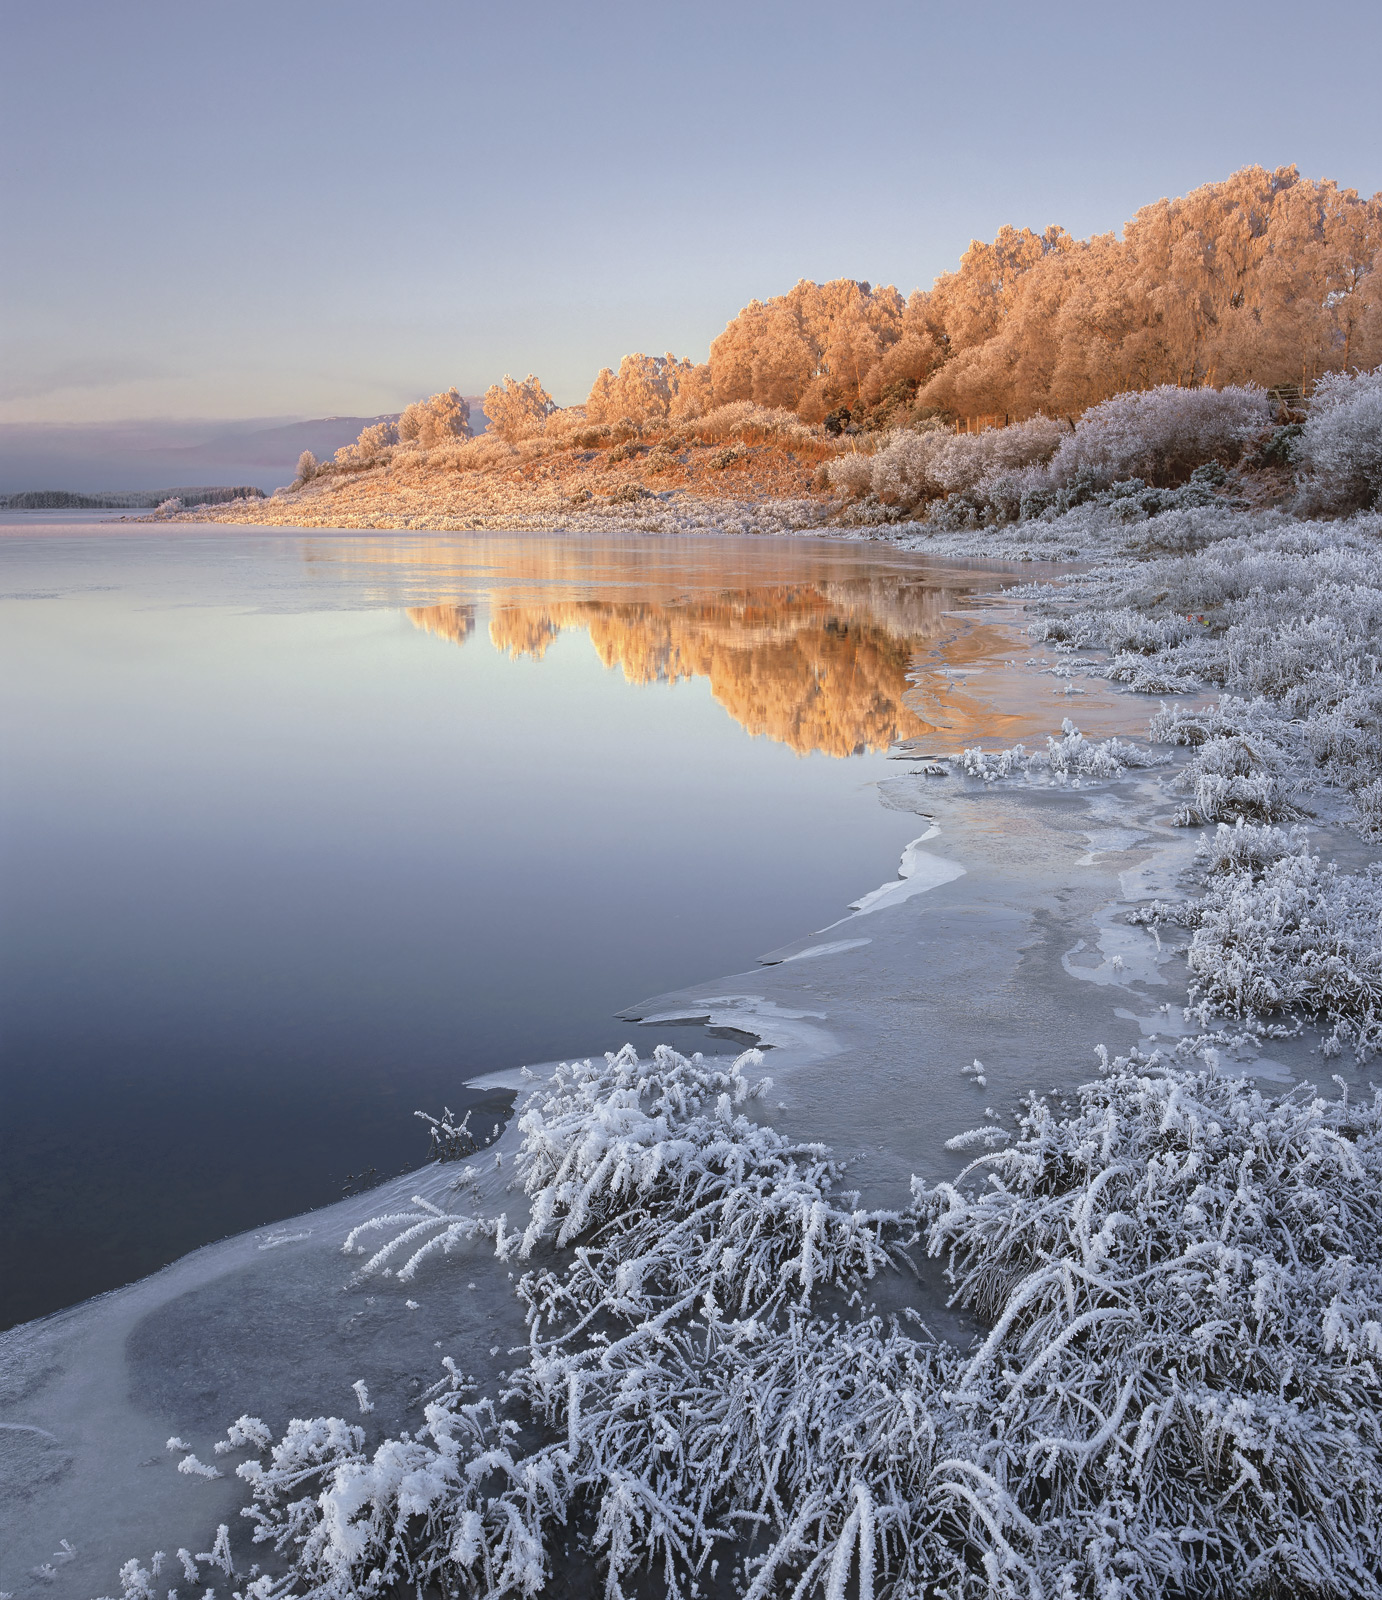 Iced Ginger, Loch Achanalt, Strathbran, Scotland, sliver, caramel, sunrise, frosted, birch, trees, ginger, cool, warm, b, photo